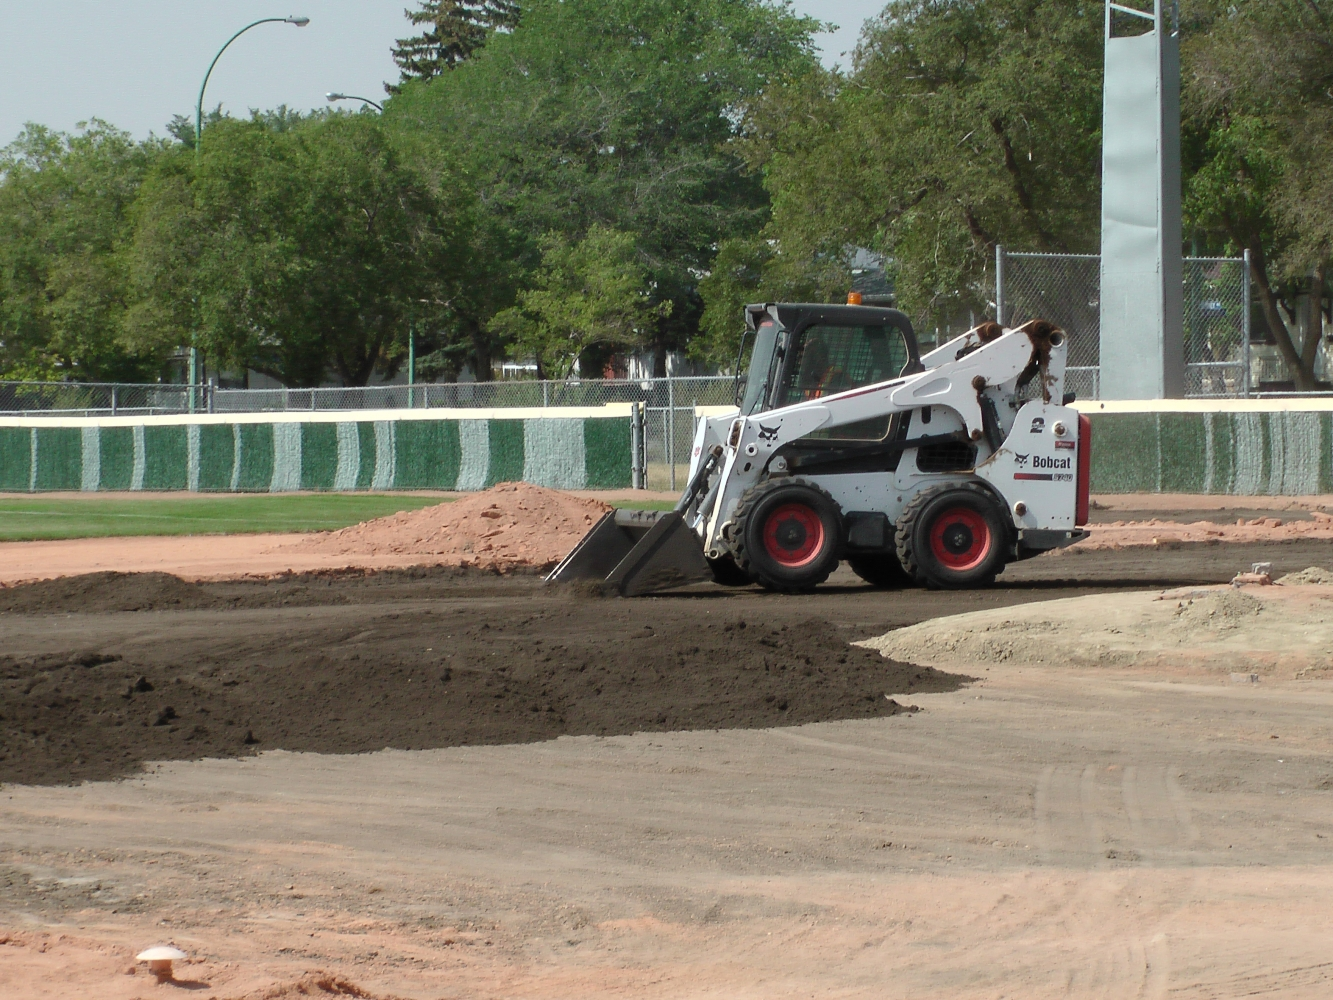 Aug 23/24/25 2018 Optimist Park Renovations Leveling of Top Soil and start on Pitcher Mound and Home Plate Pics and Video